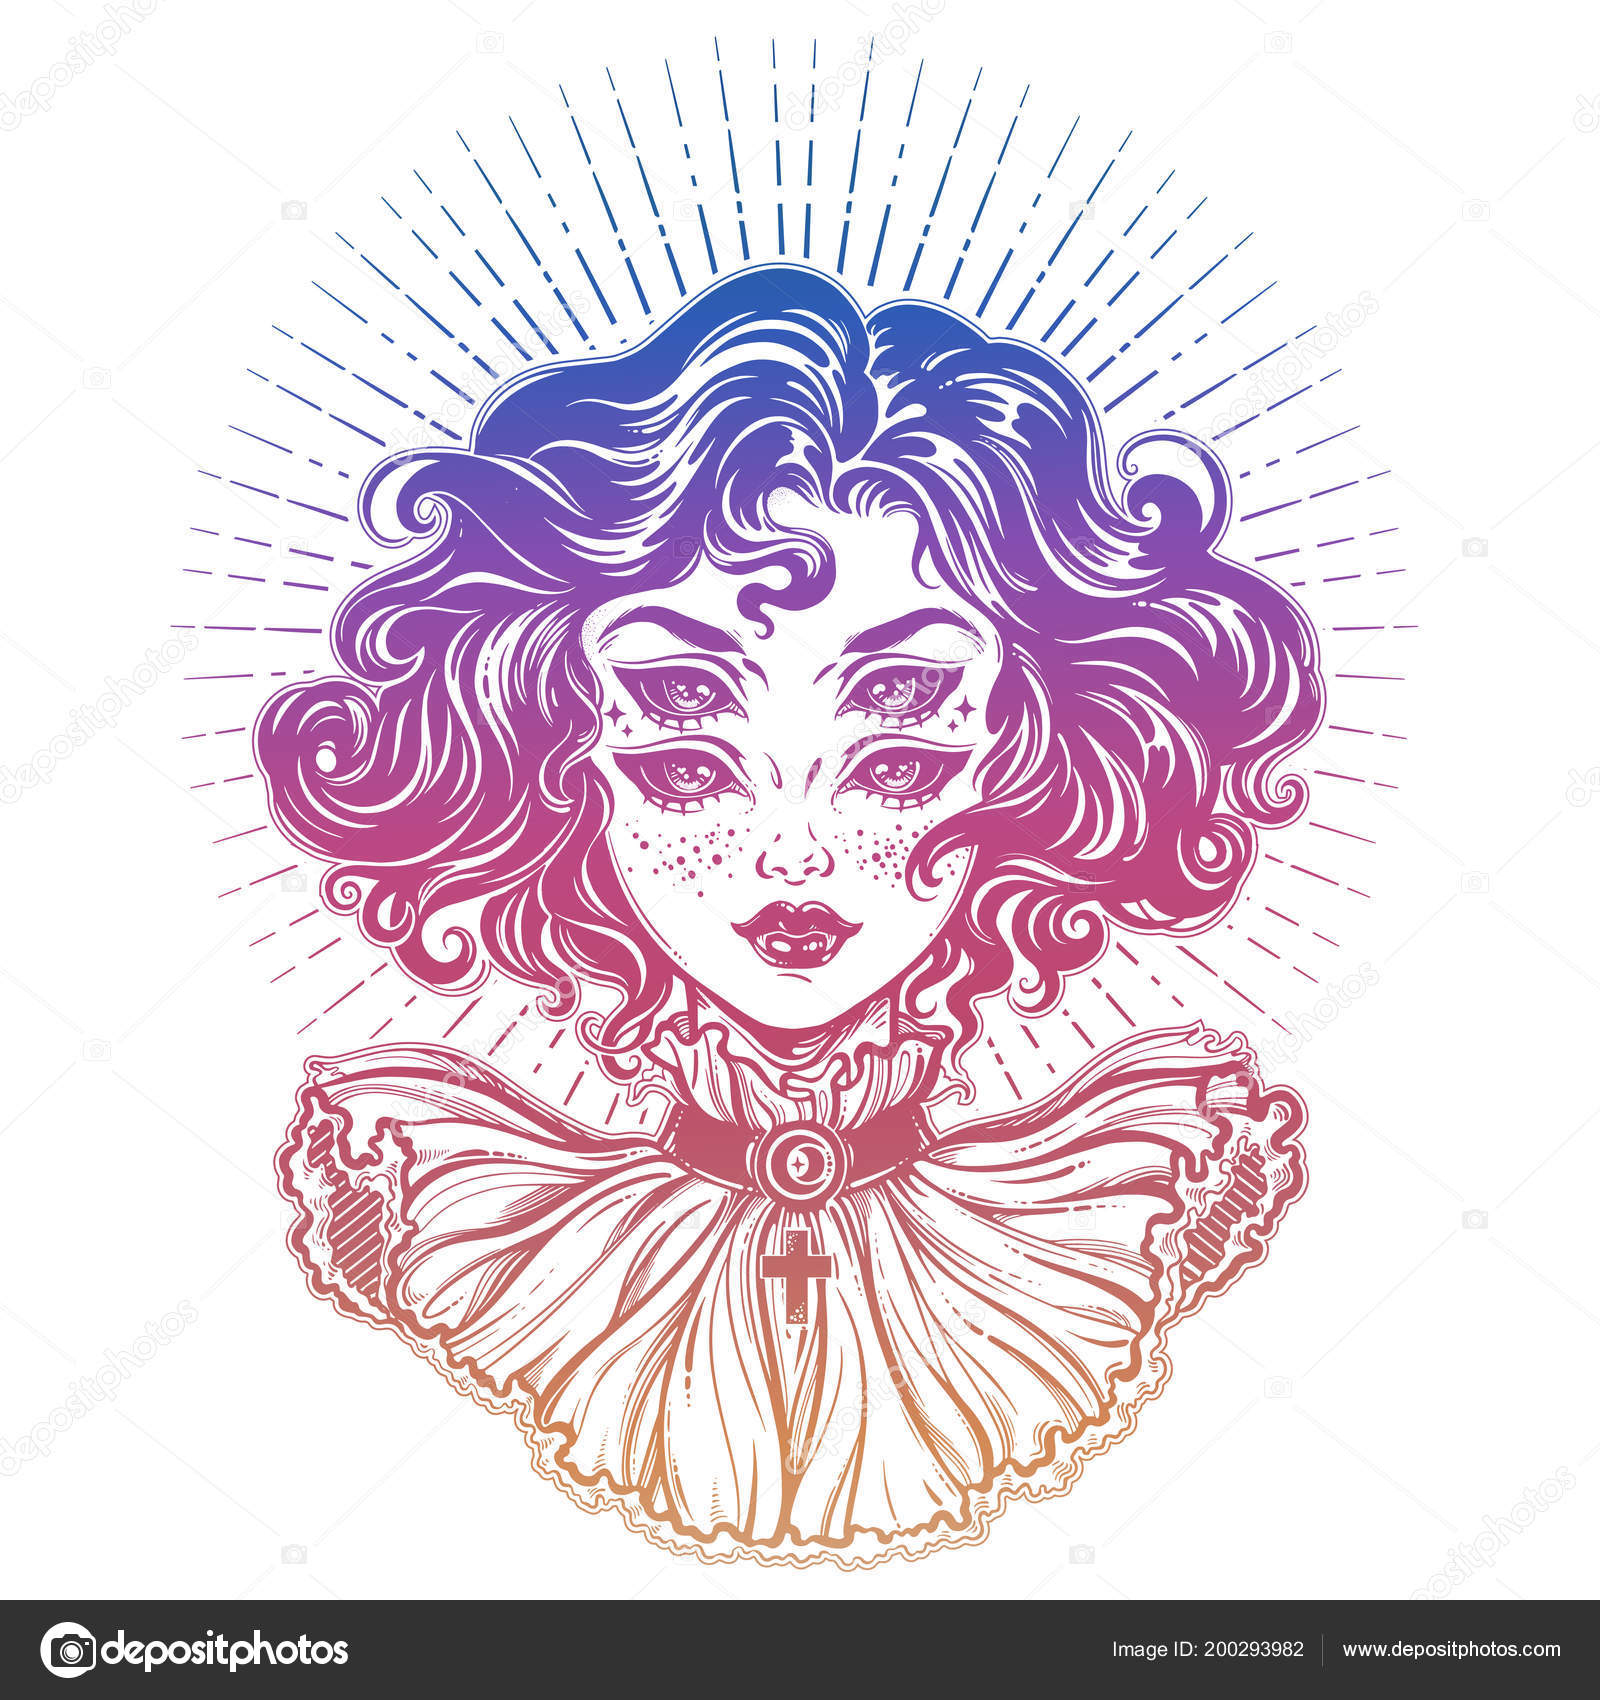 fc8426052f346 Gothic devil vempire like witch girl head portrait with curly hair and four  eyes. Halloween, tattoo, weird, psychedelic art for print, posters,  t-shirts and ...